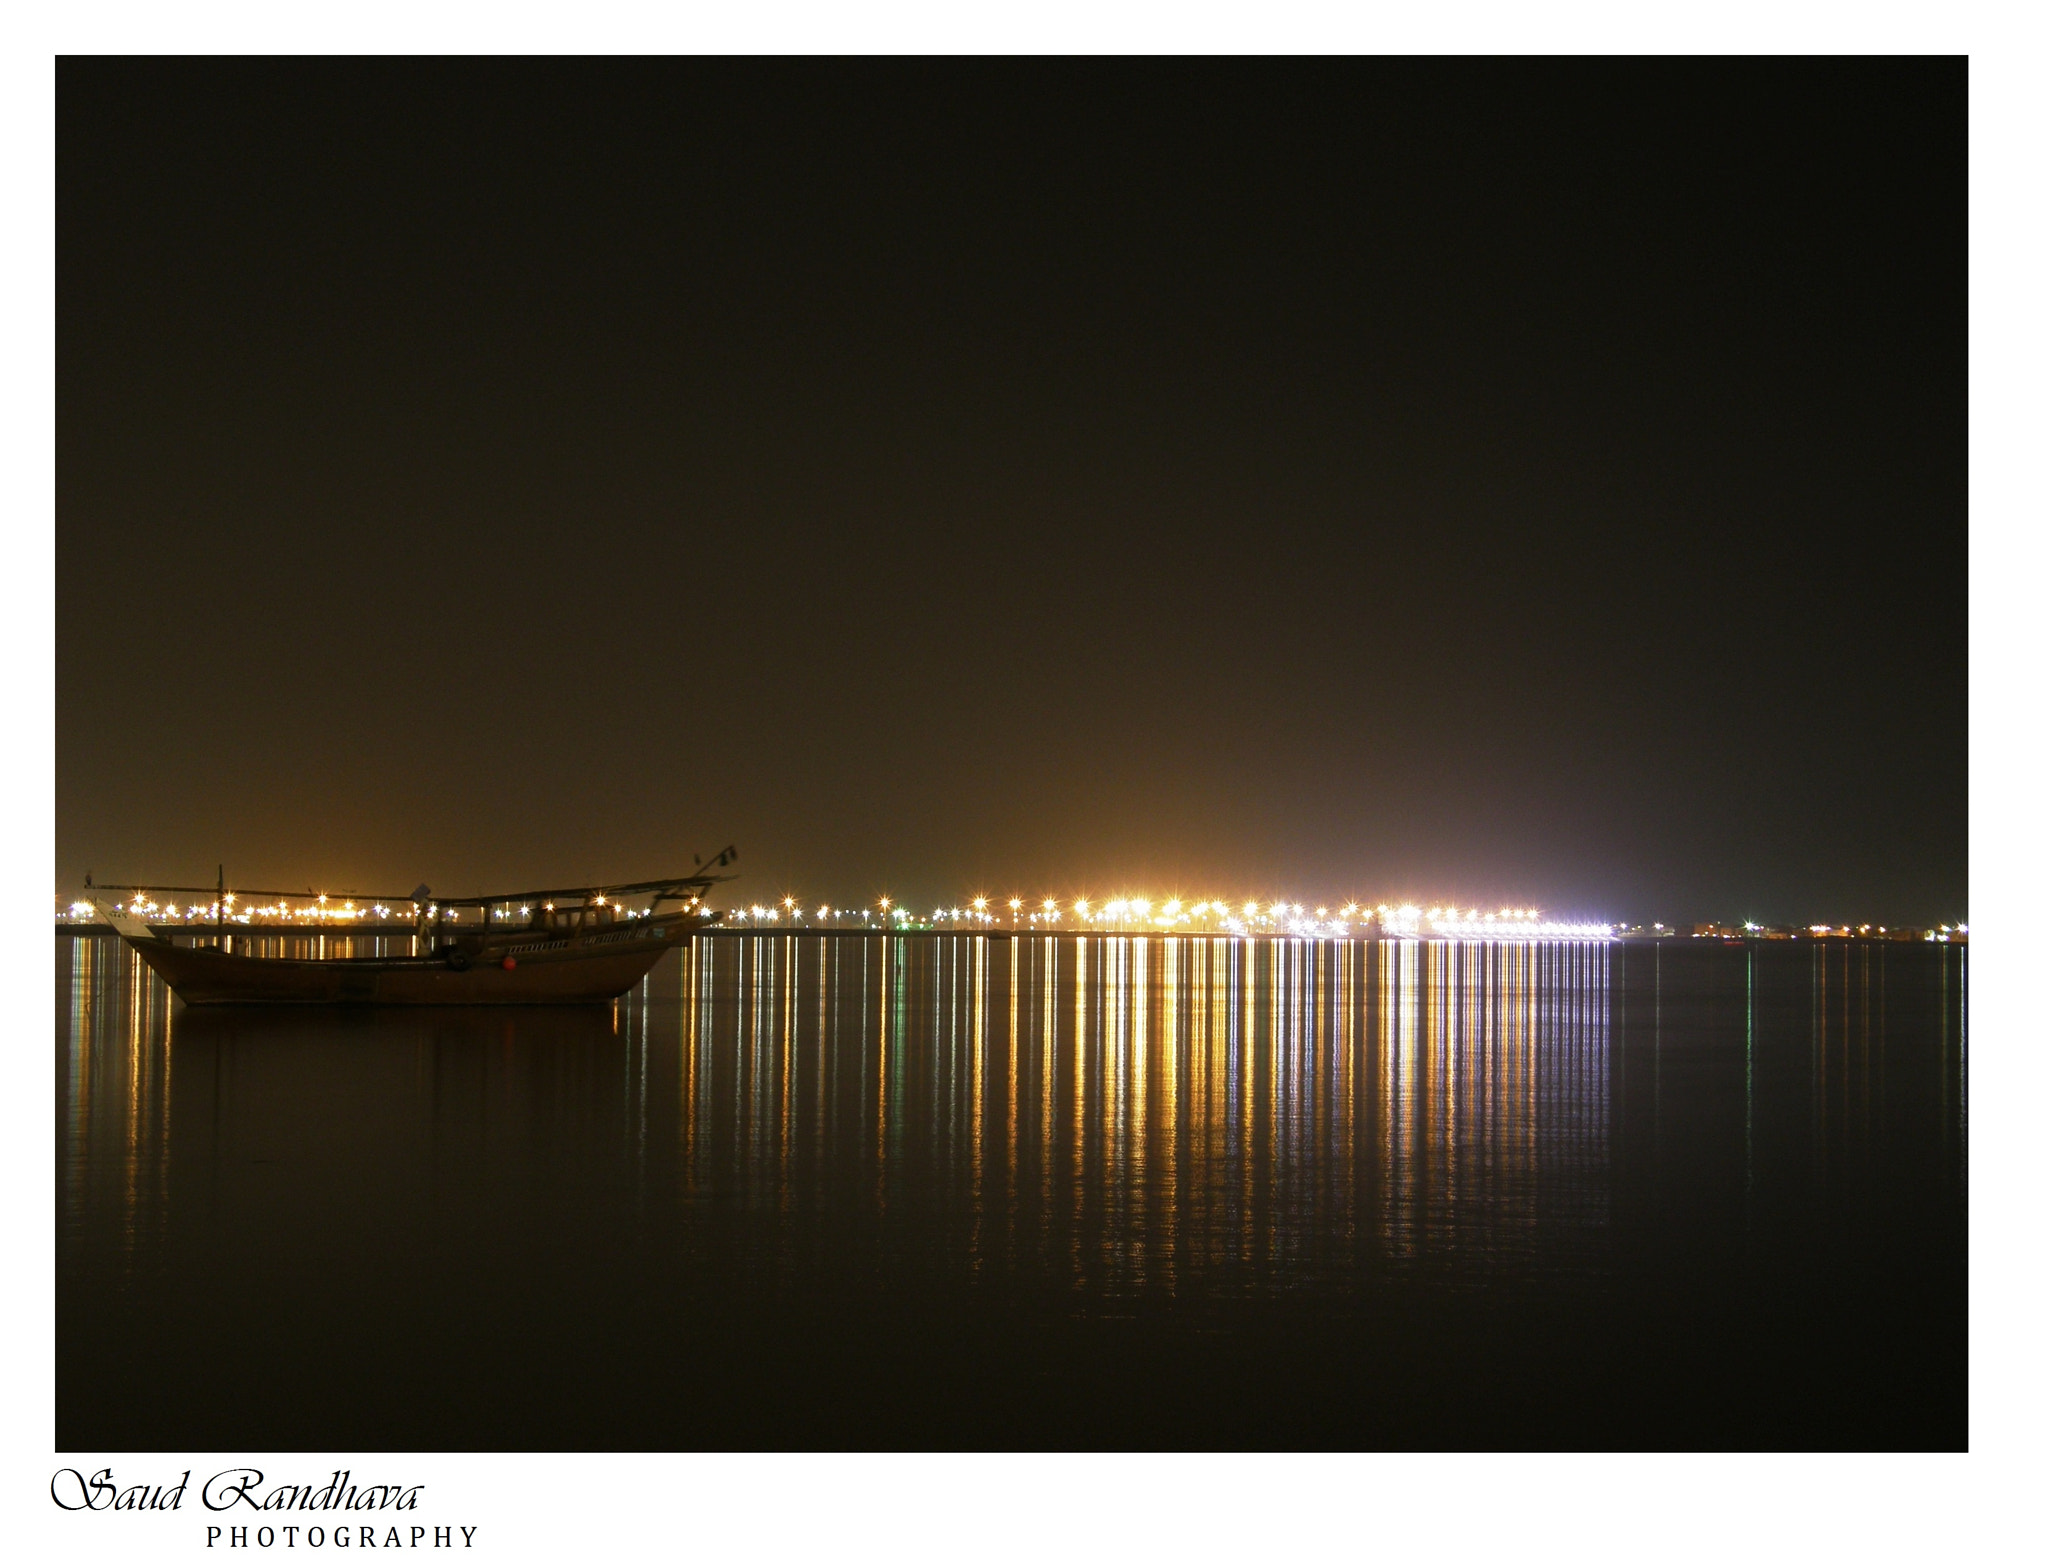 Photograph CITY LIGHTS & Reflecting view AT QATIF, KSA by Saud Ashraf on 500px